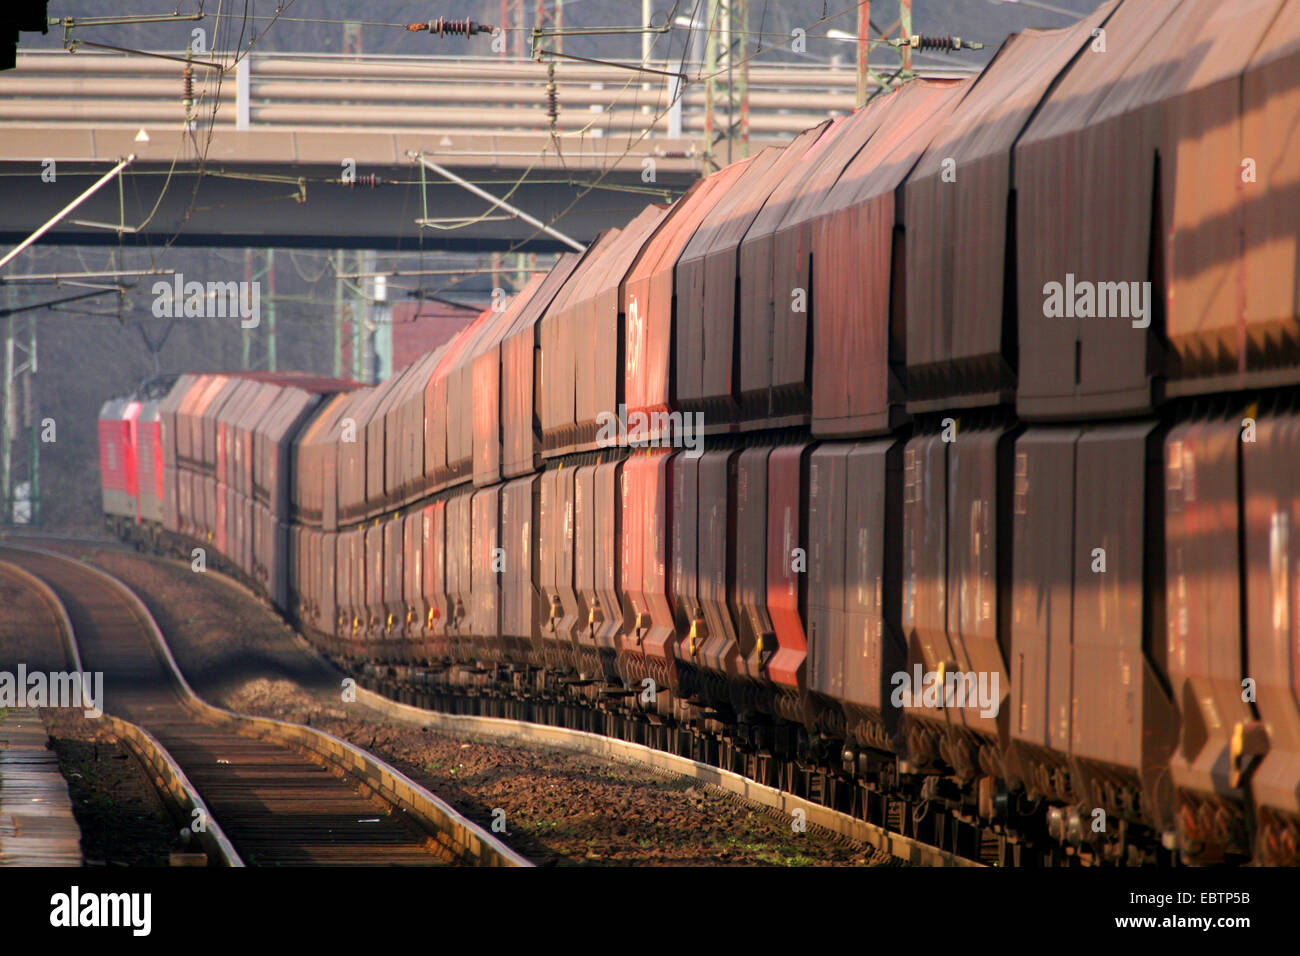 germany rhine train stock photos germany rhine train stock images alamy. Black Bedroom Furniture Sets. Home Design Ideas